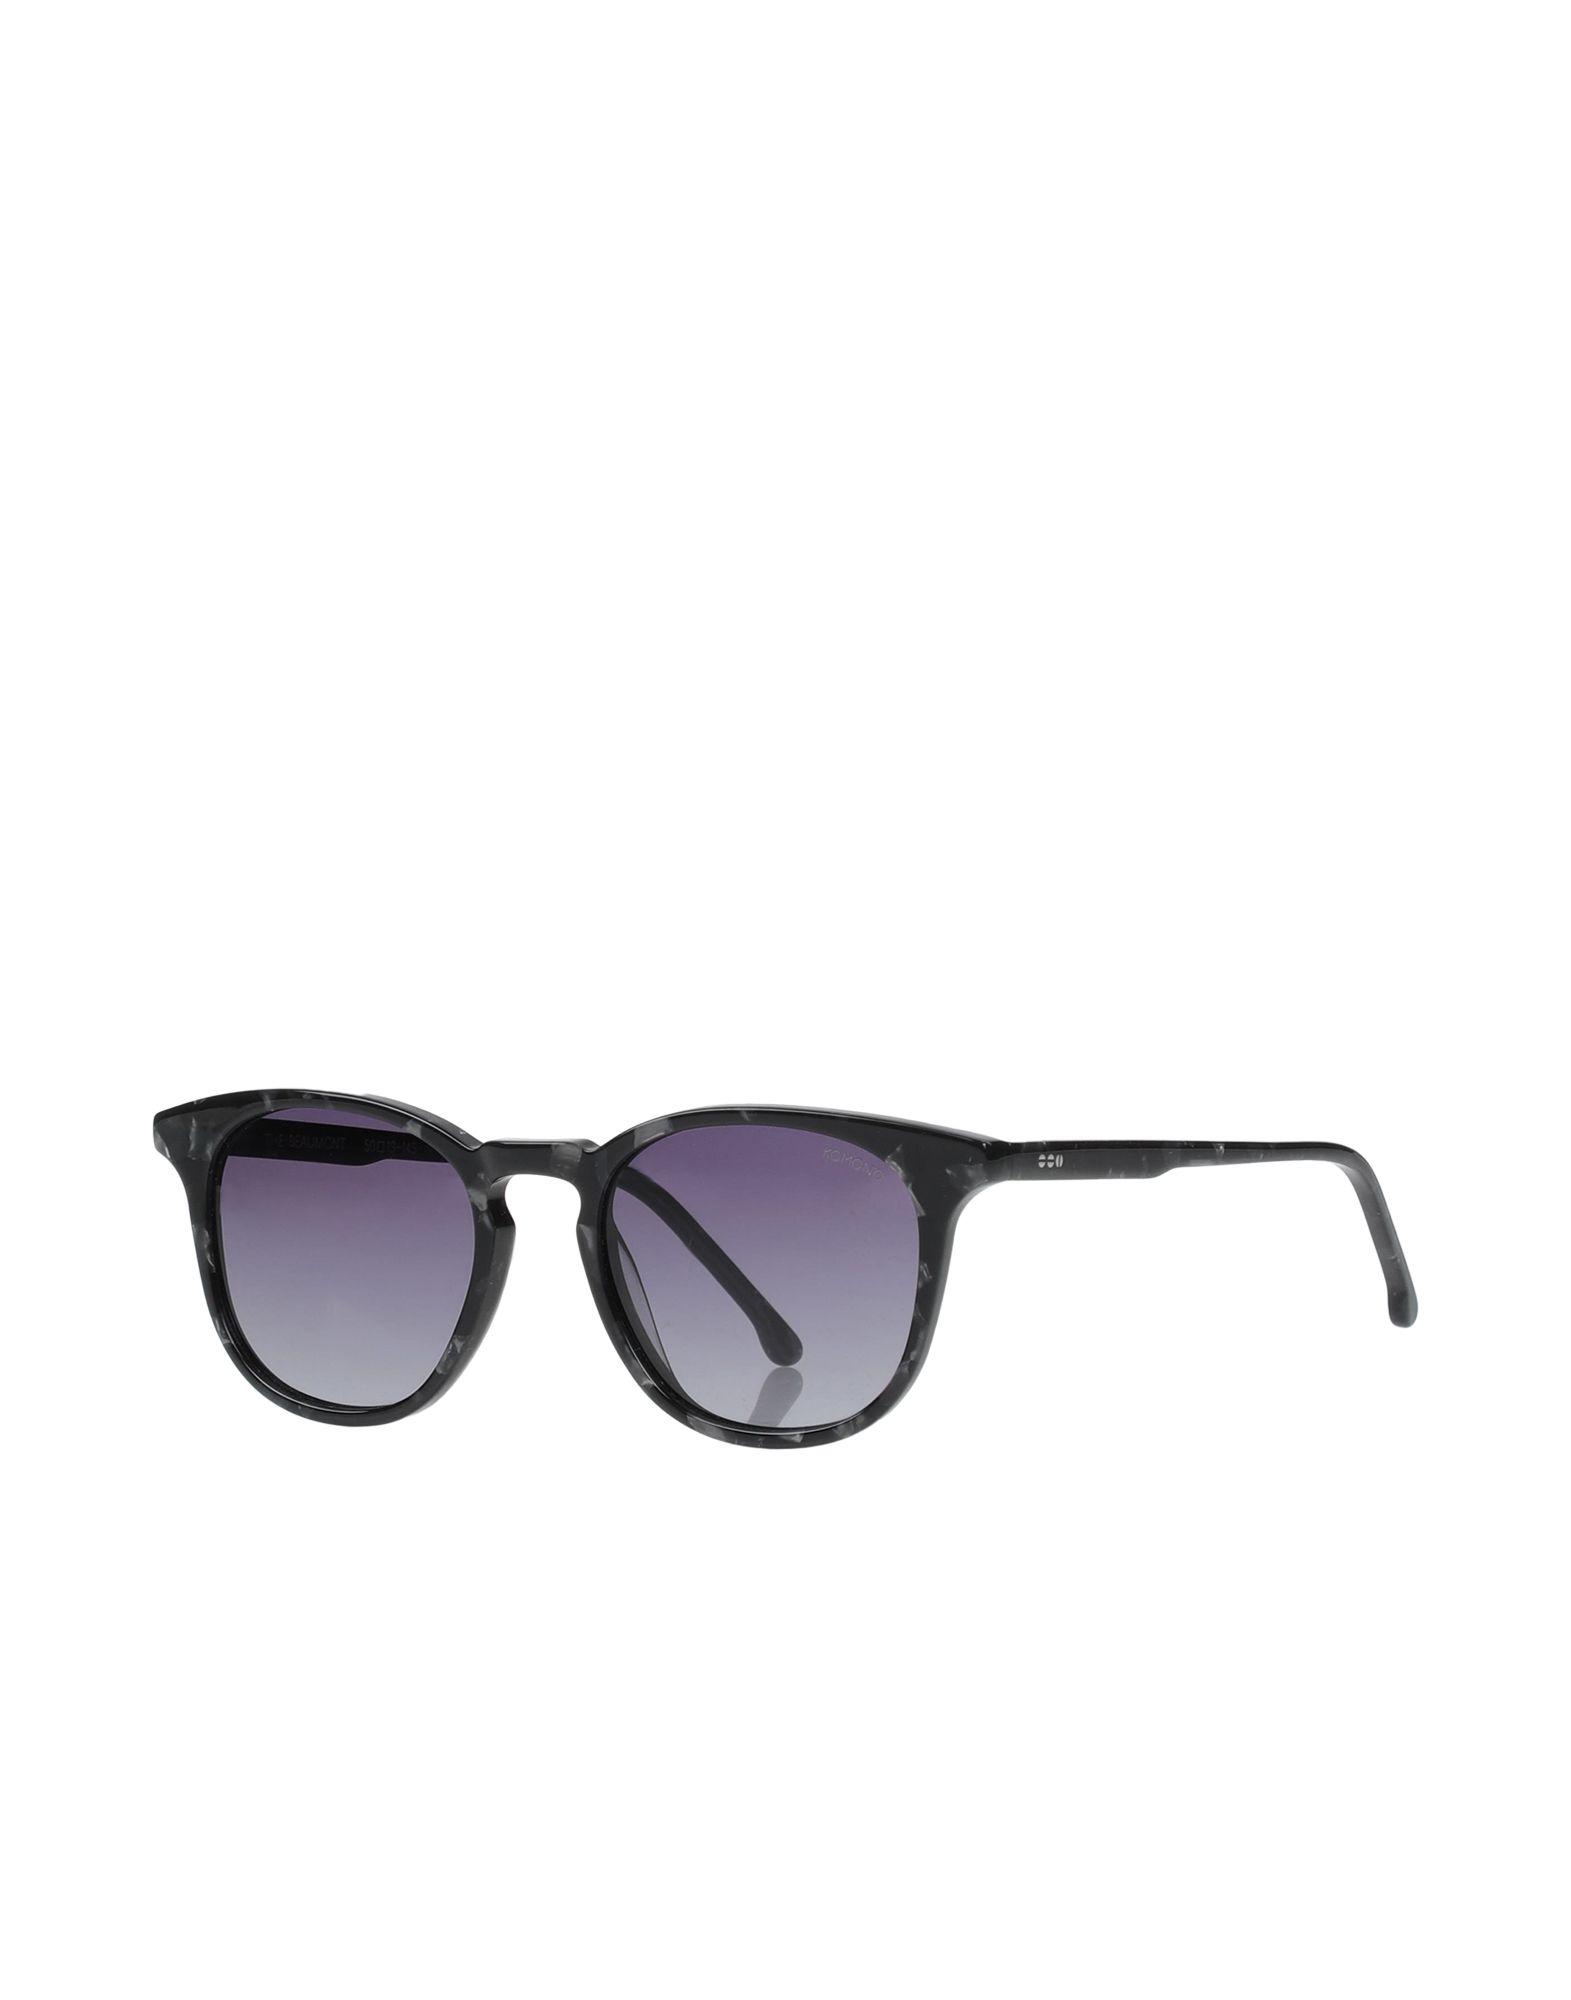 KOMONO Sunglasses - Item 46680862